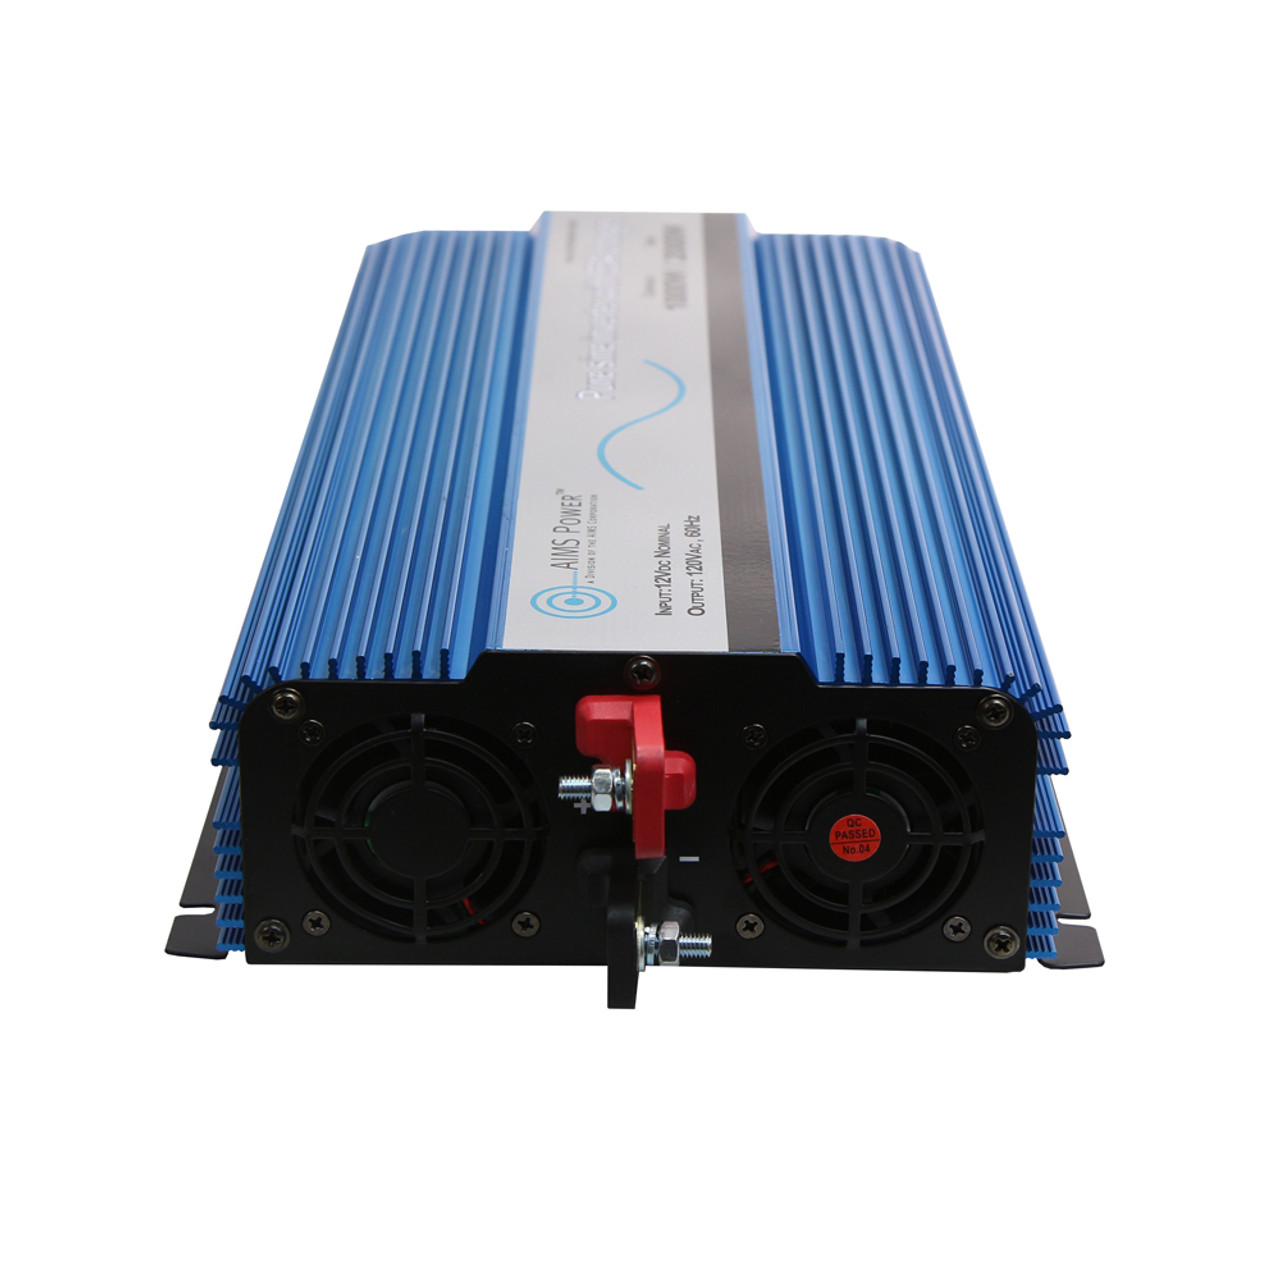 AIMS 1000 Watt Pure Sine Inverter Charger Hardwire Only